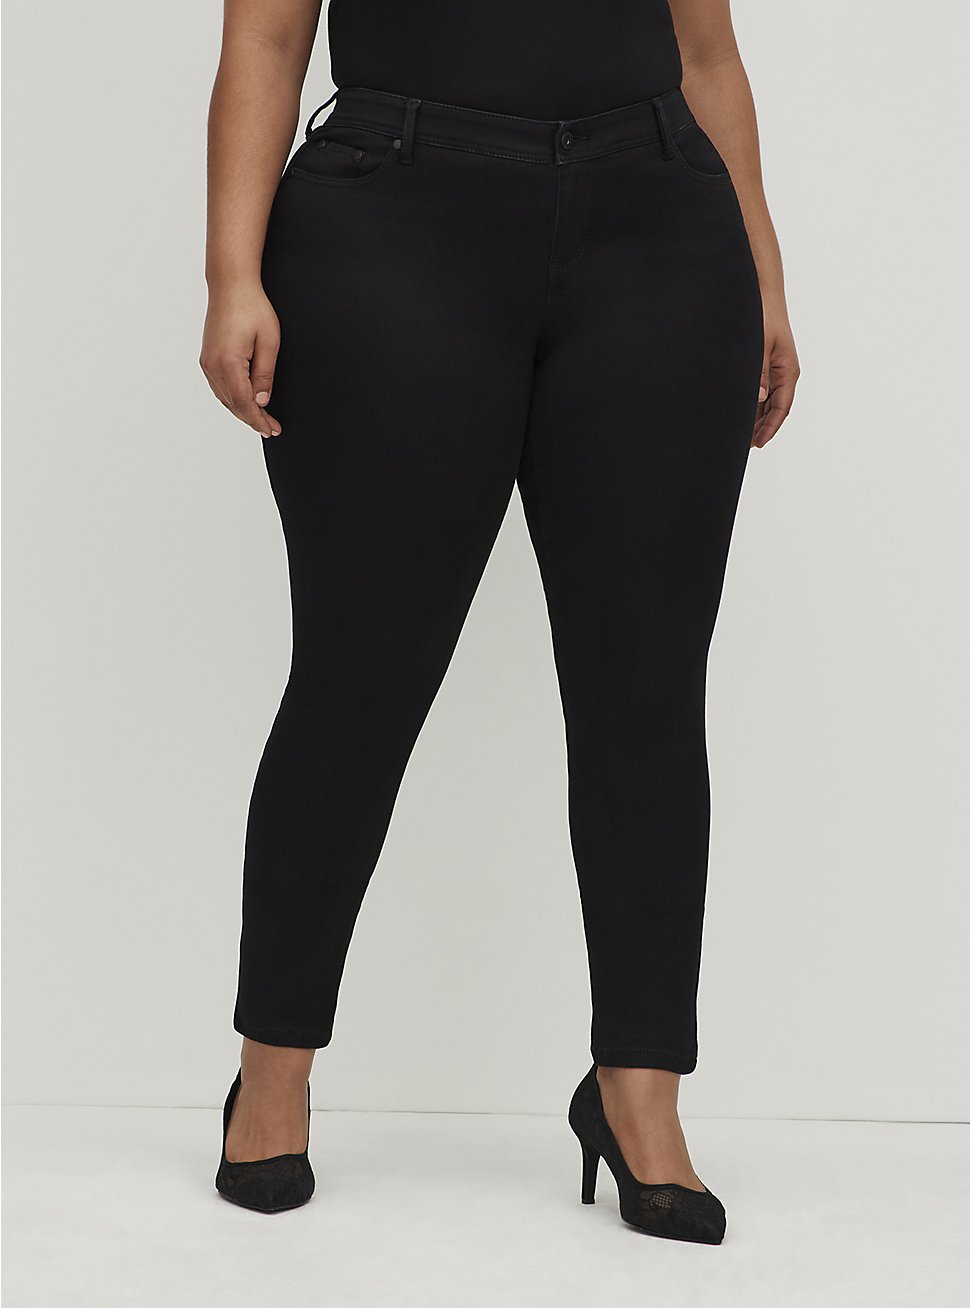 Luxe Skinny Jean - Sateen Stretch Black, BLACK, hi-res